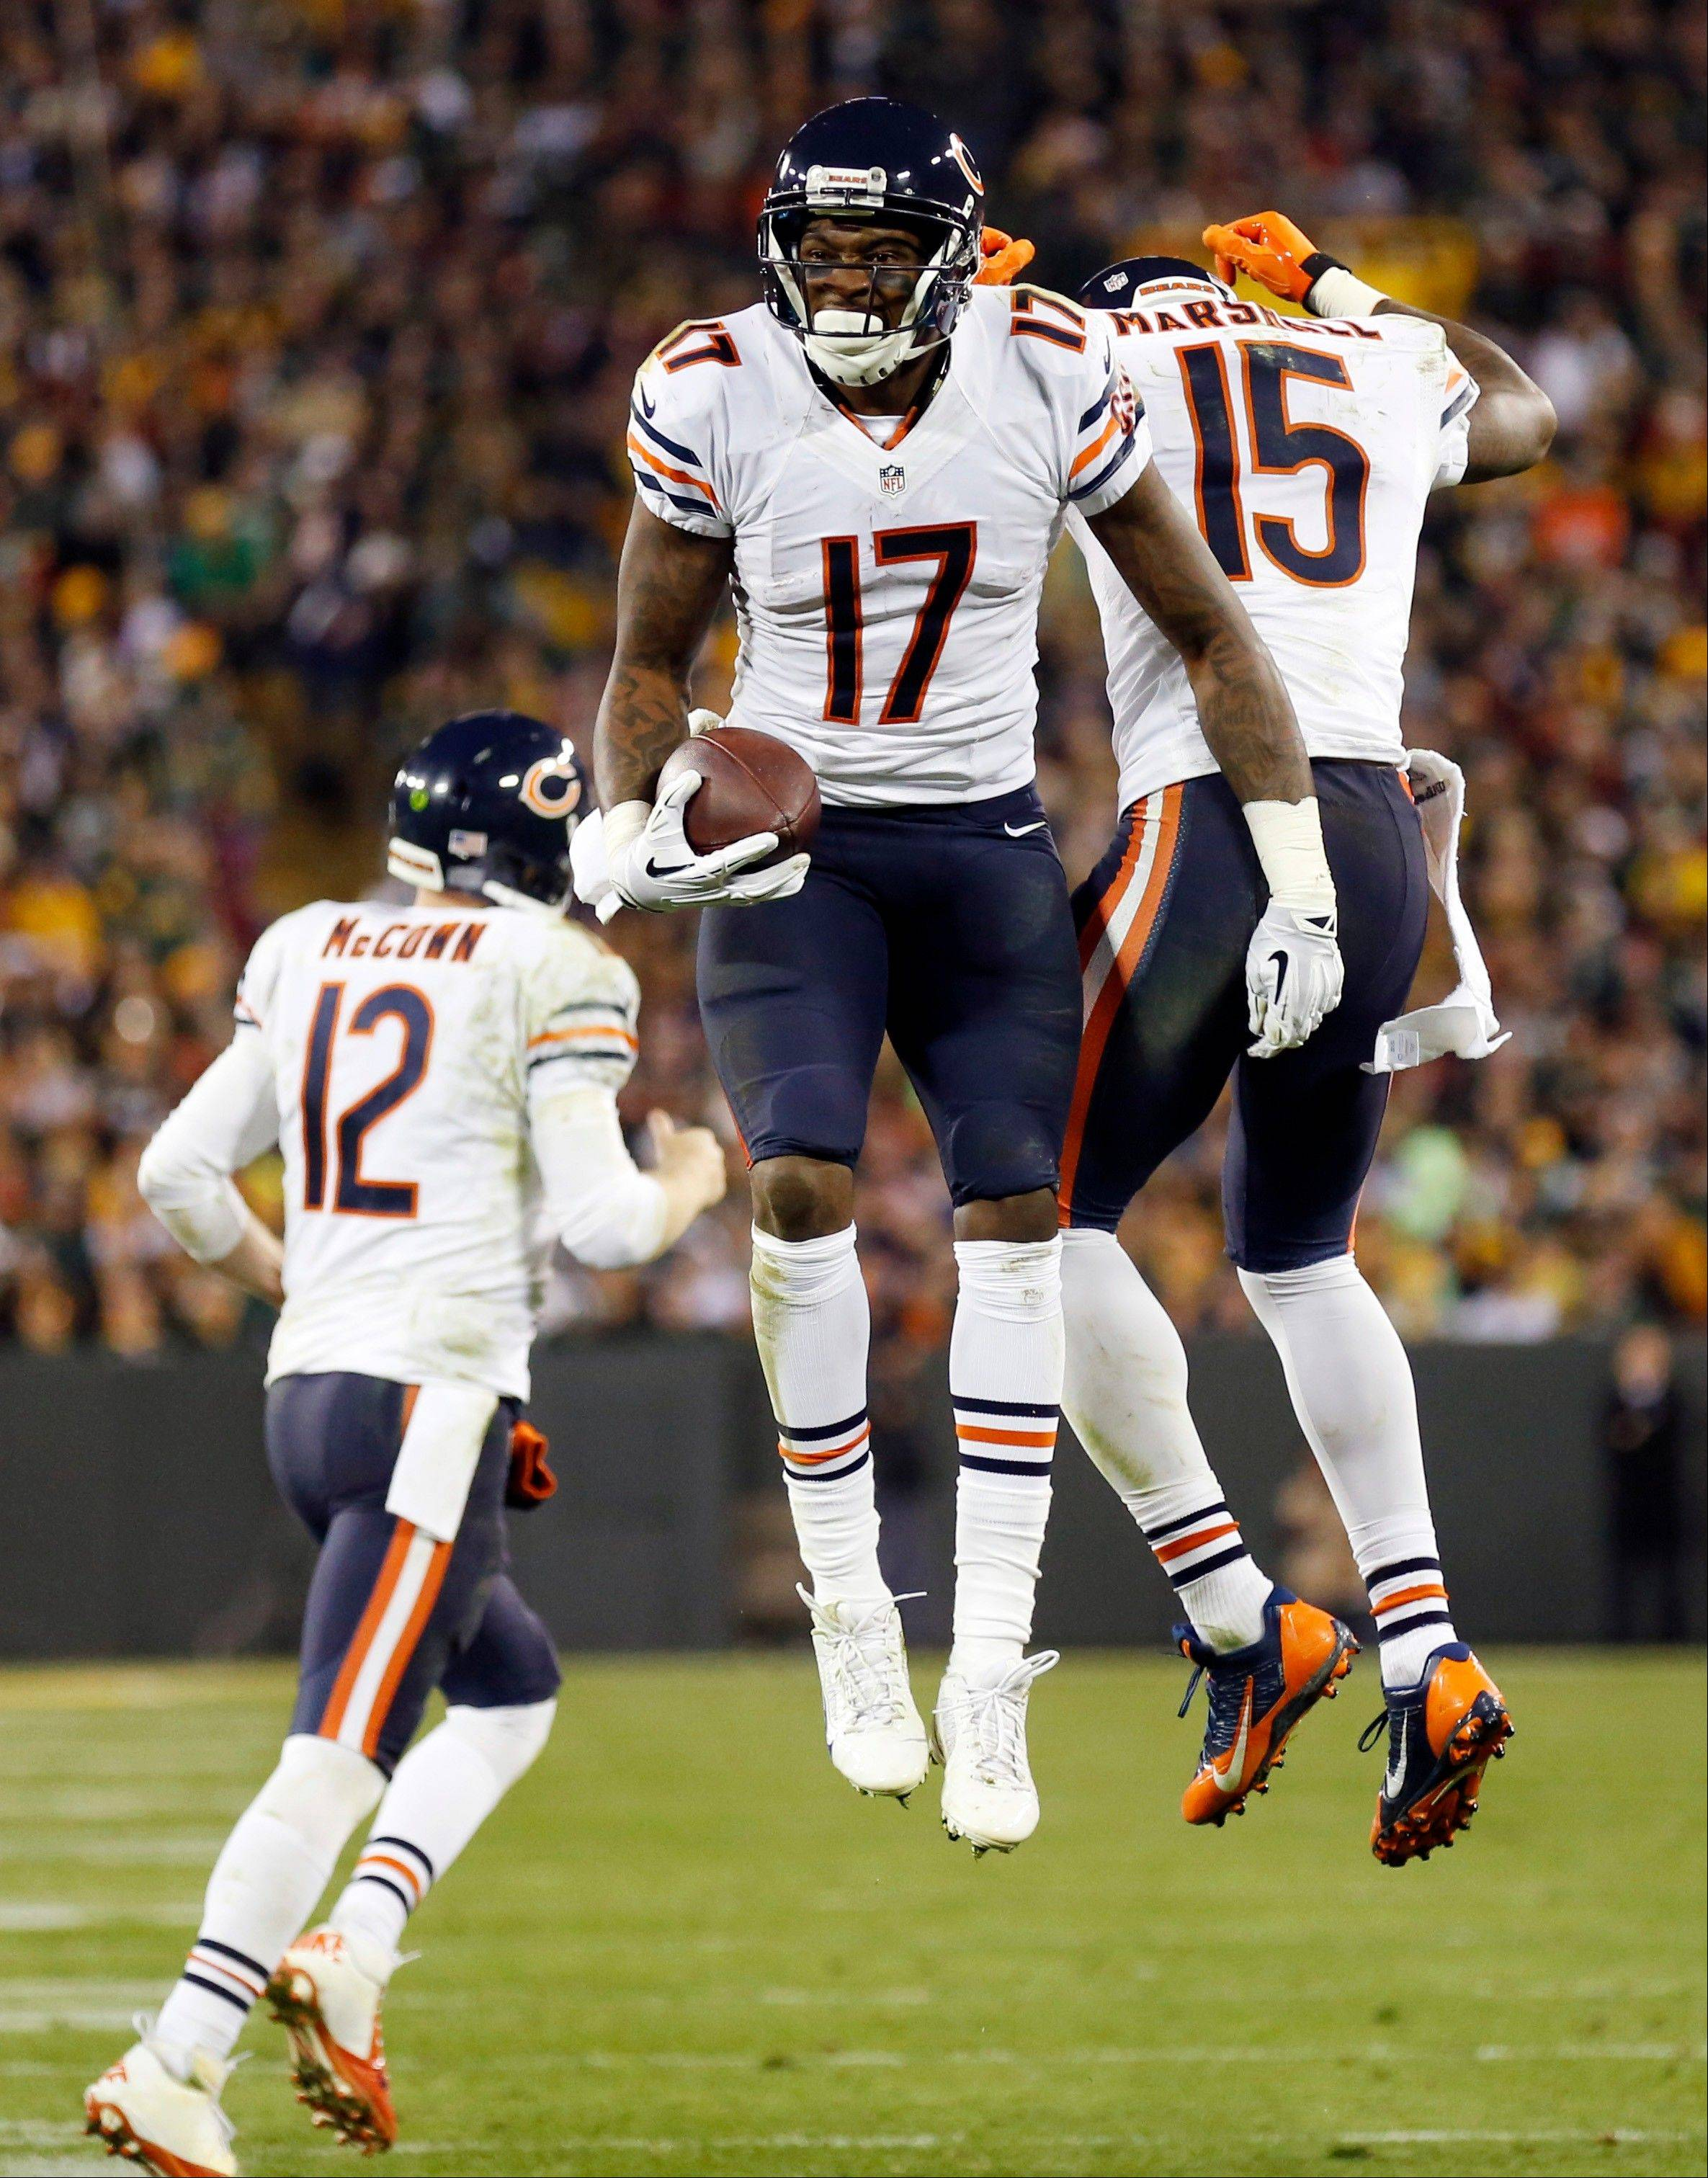 Brandon Marshall (15) celebrates a touchdown catche with teammates Alshon Jeffery (17) and Josh McCown (12) during the Bears' win over Green Bay on Nov. 4, 2013.